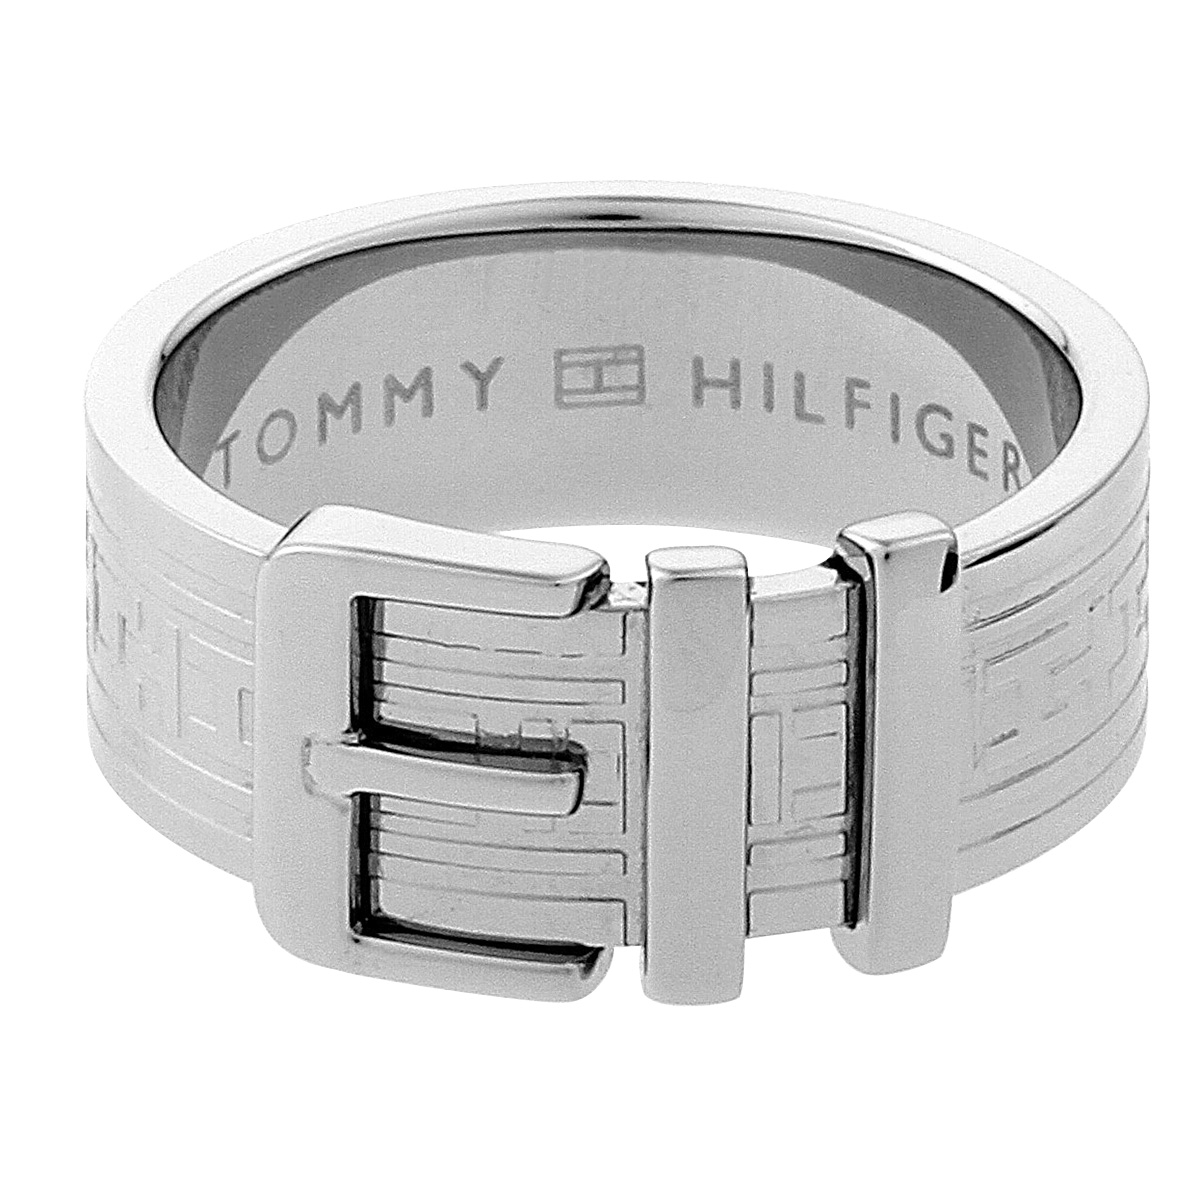 tommy hilfiger jewellery stainless steel ring 2700031d. Black Bedroom Furniture Sets. Home Design Ideas